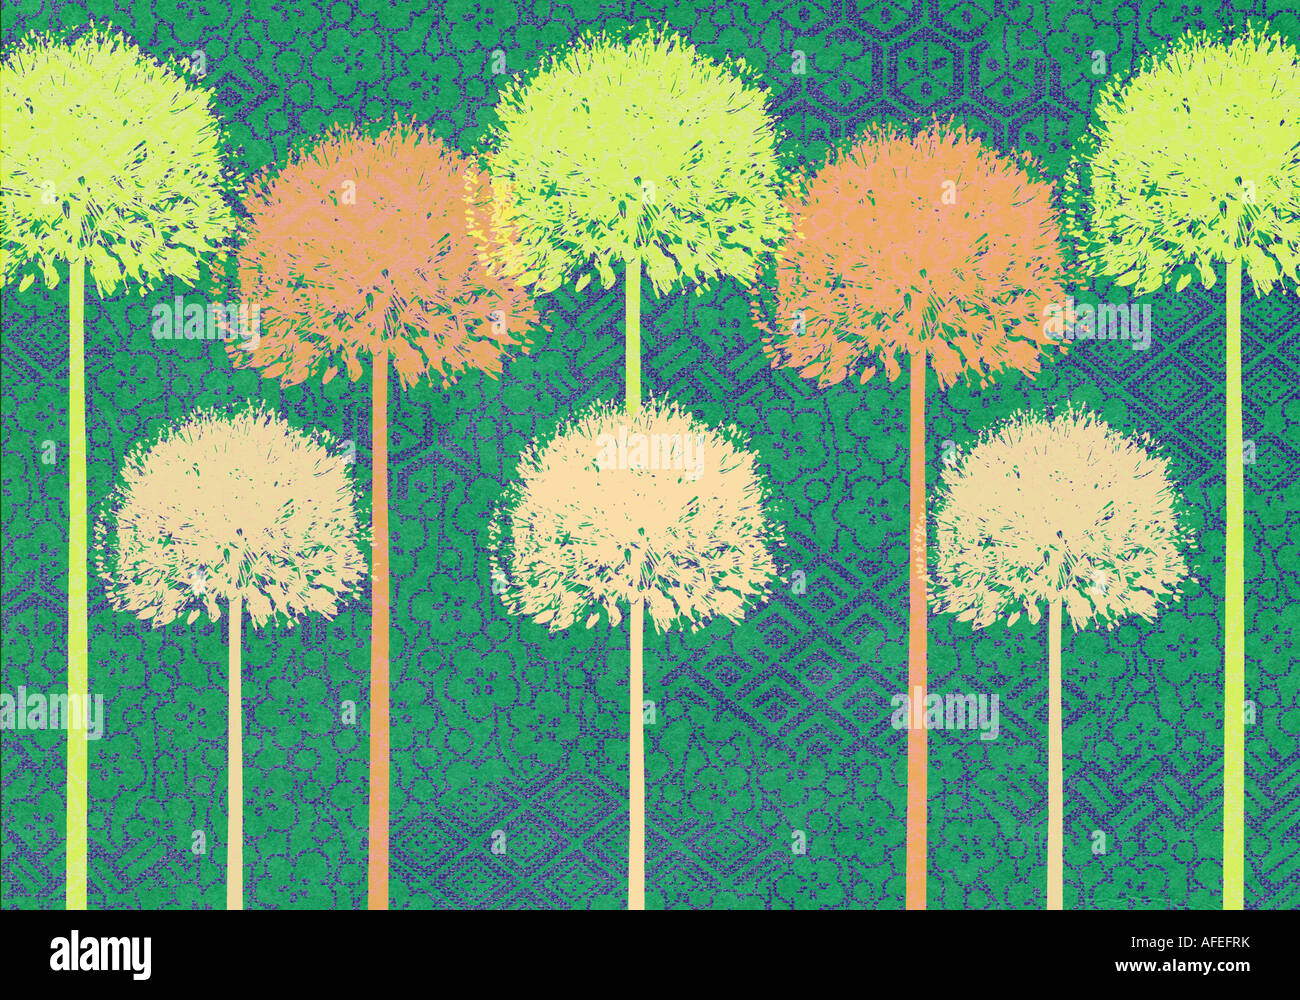 Step and repeat Illustration of Alliums Stock Photo